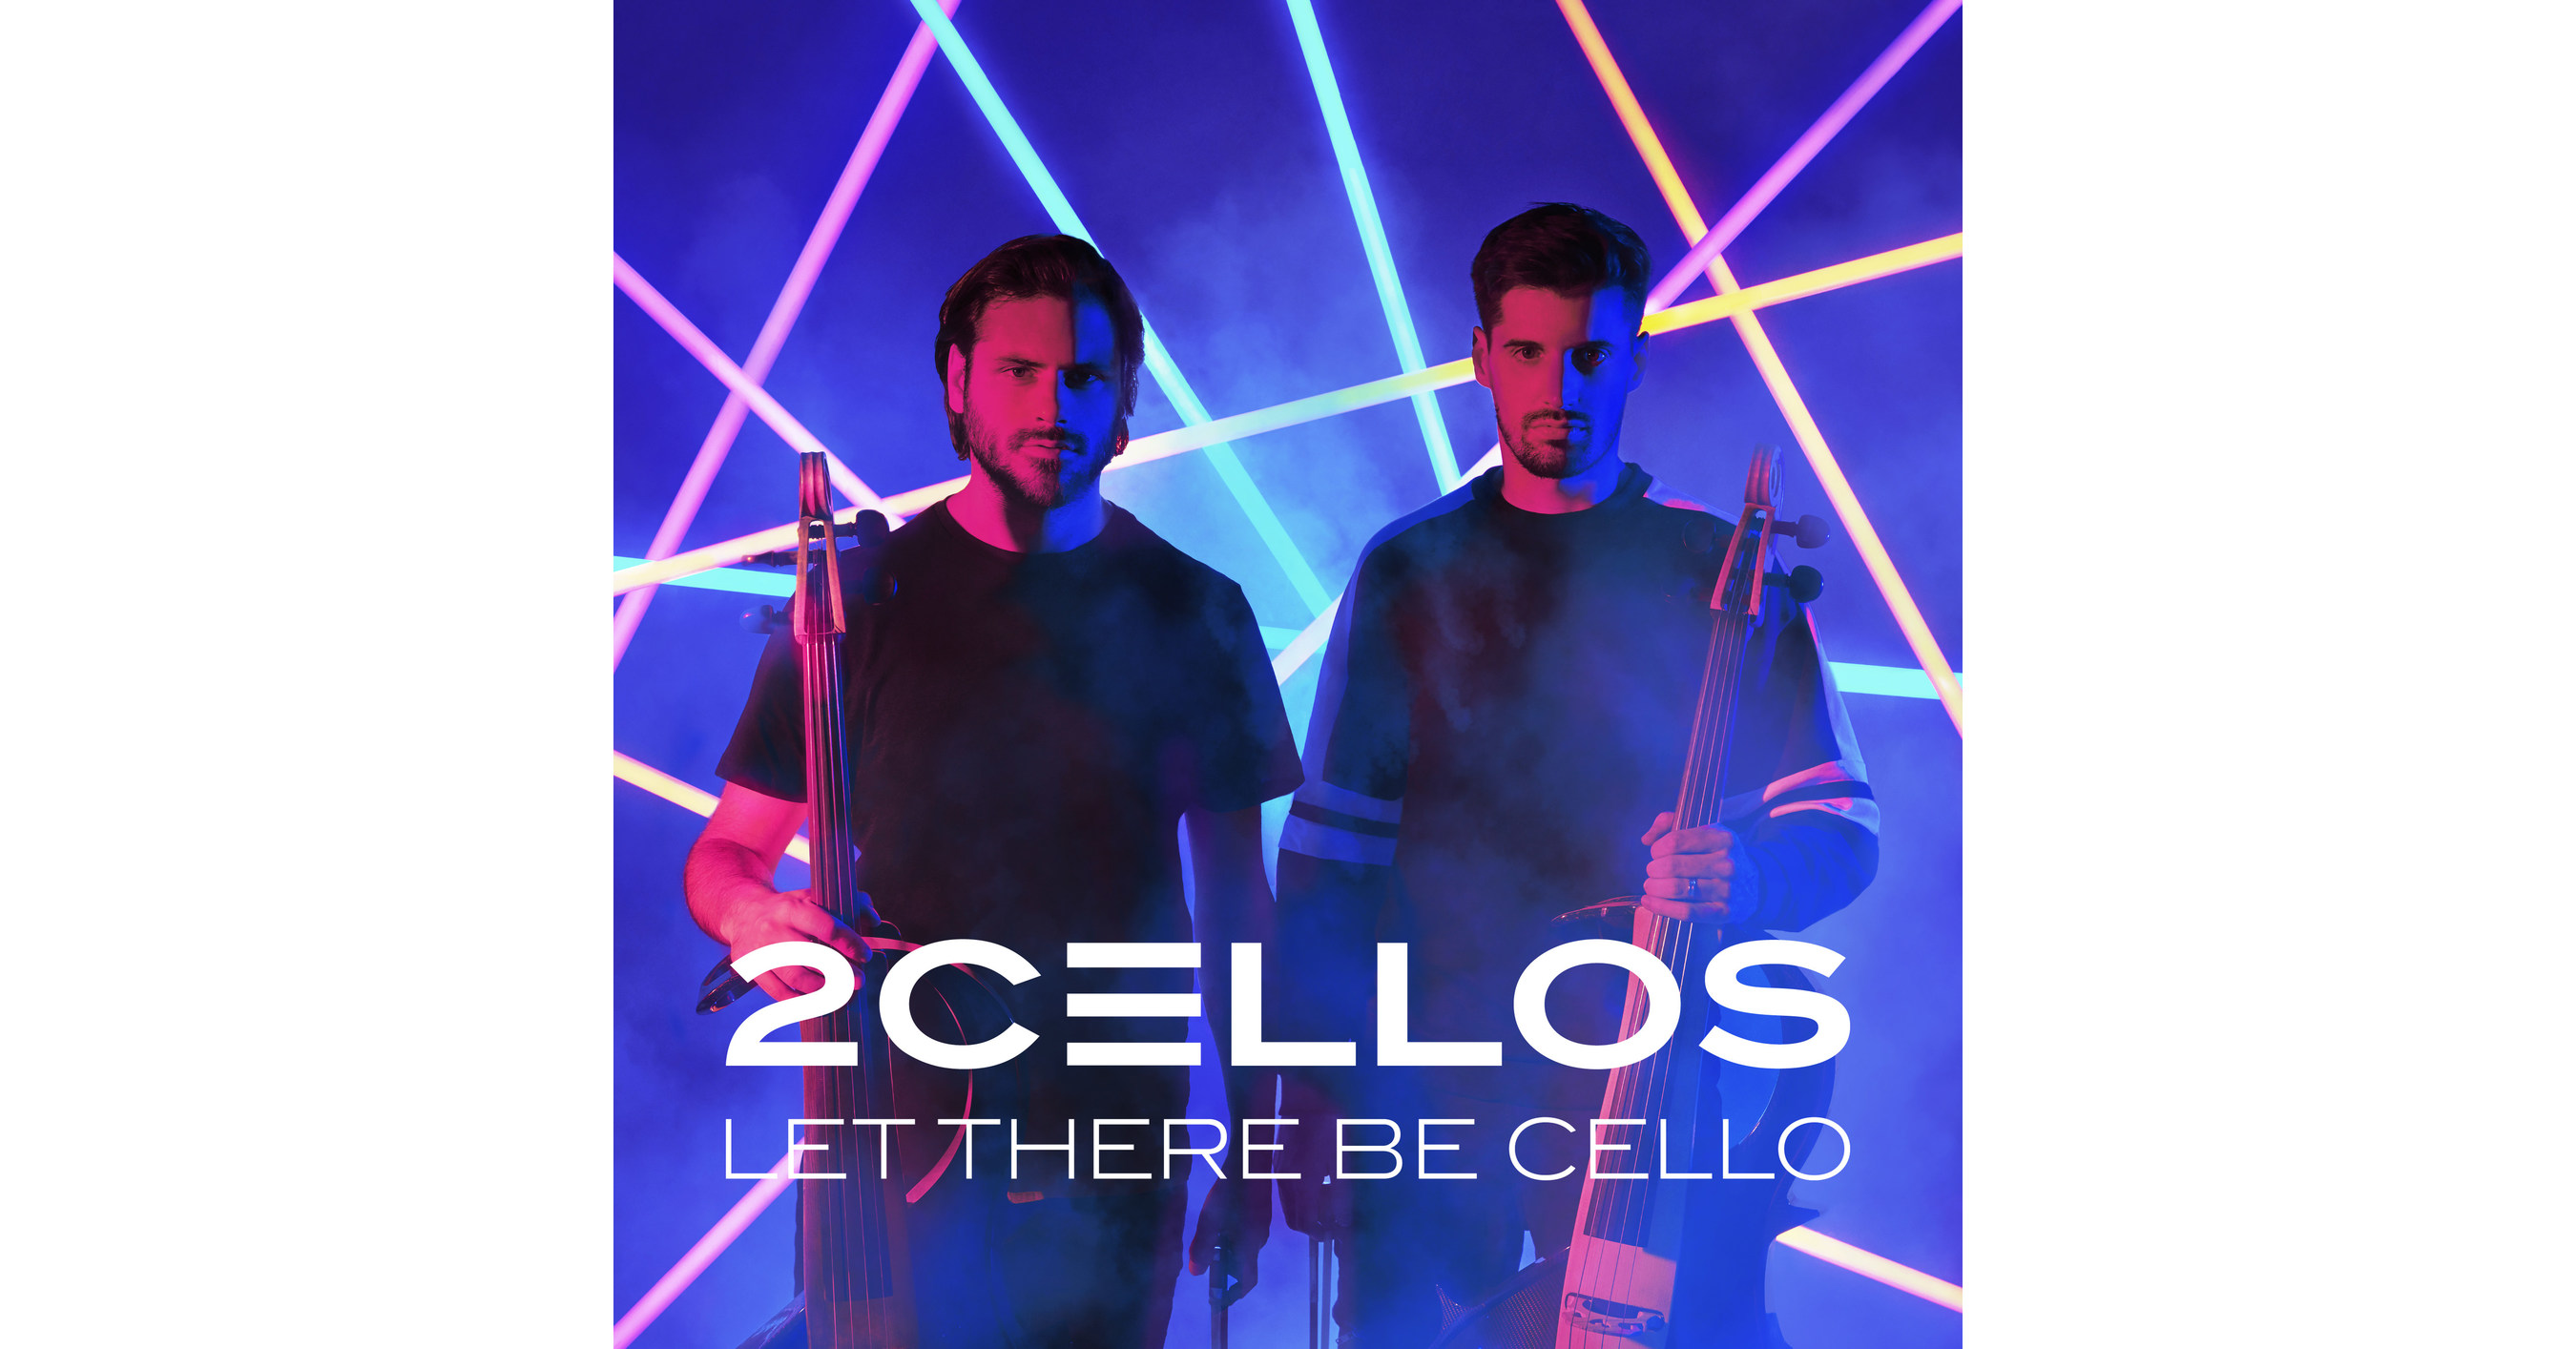 2CELLOS Announce New Album Let There Be Cello Availalble